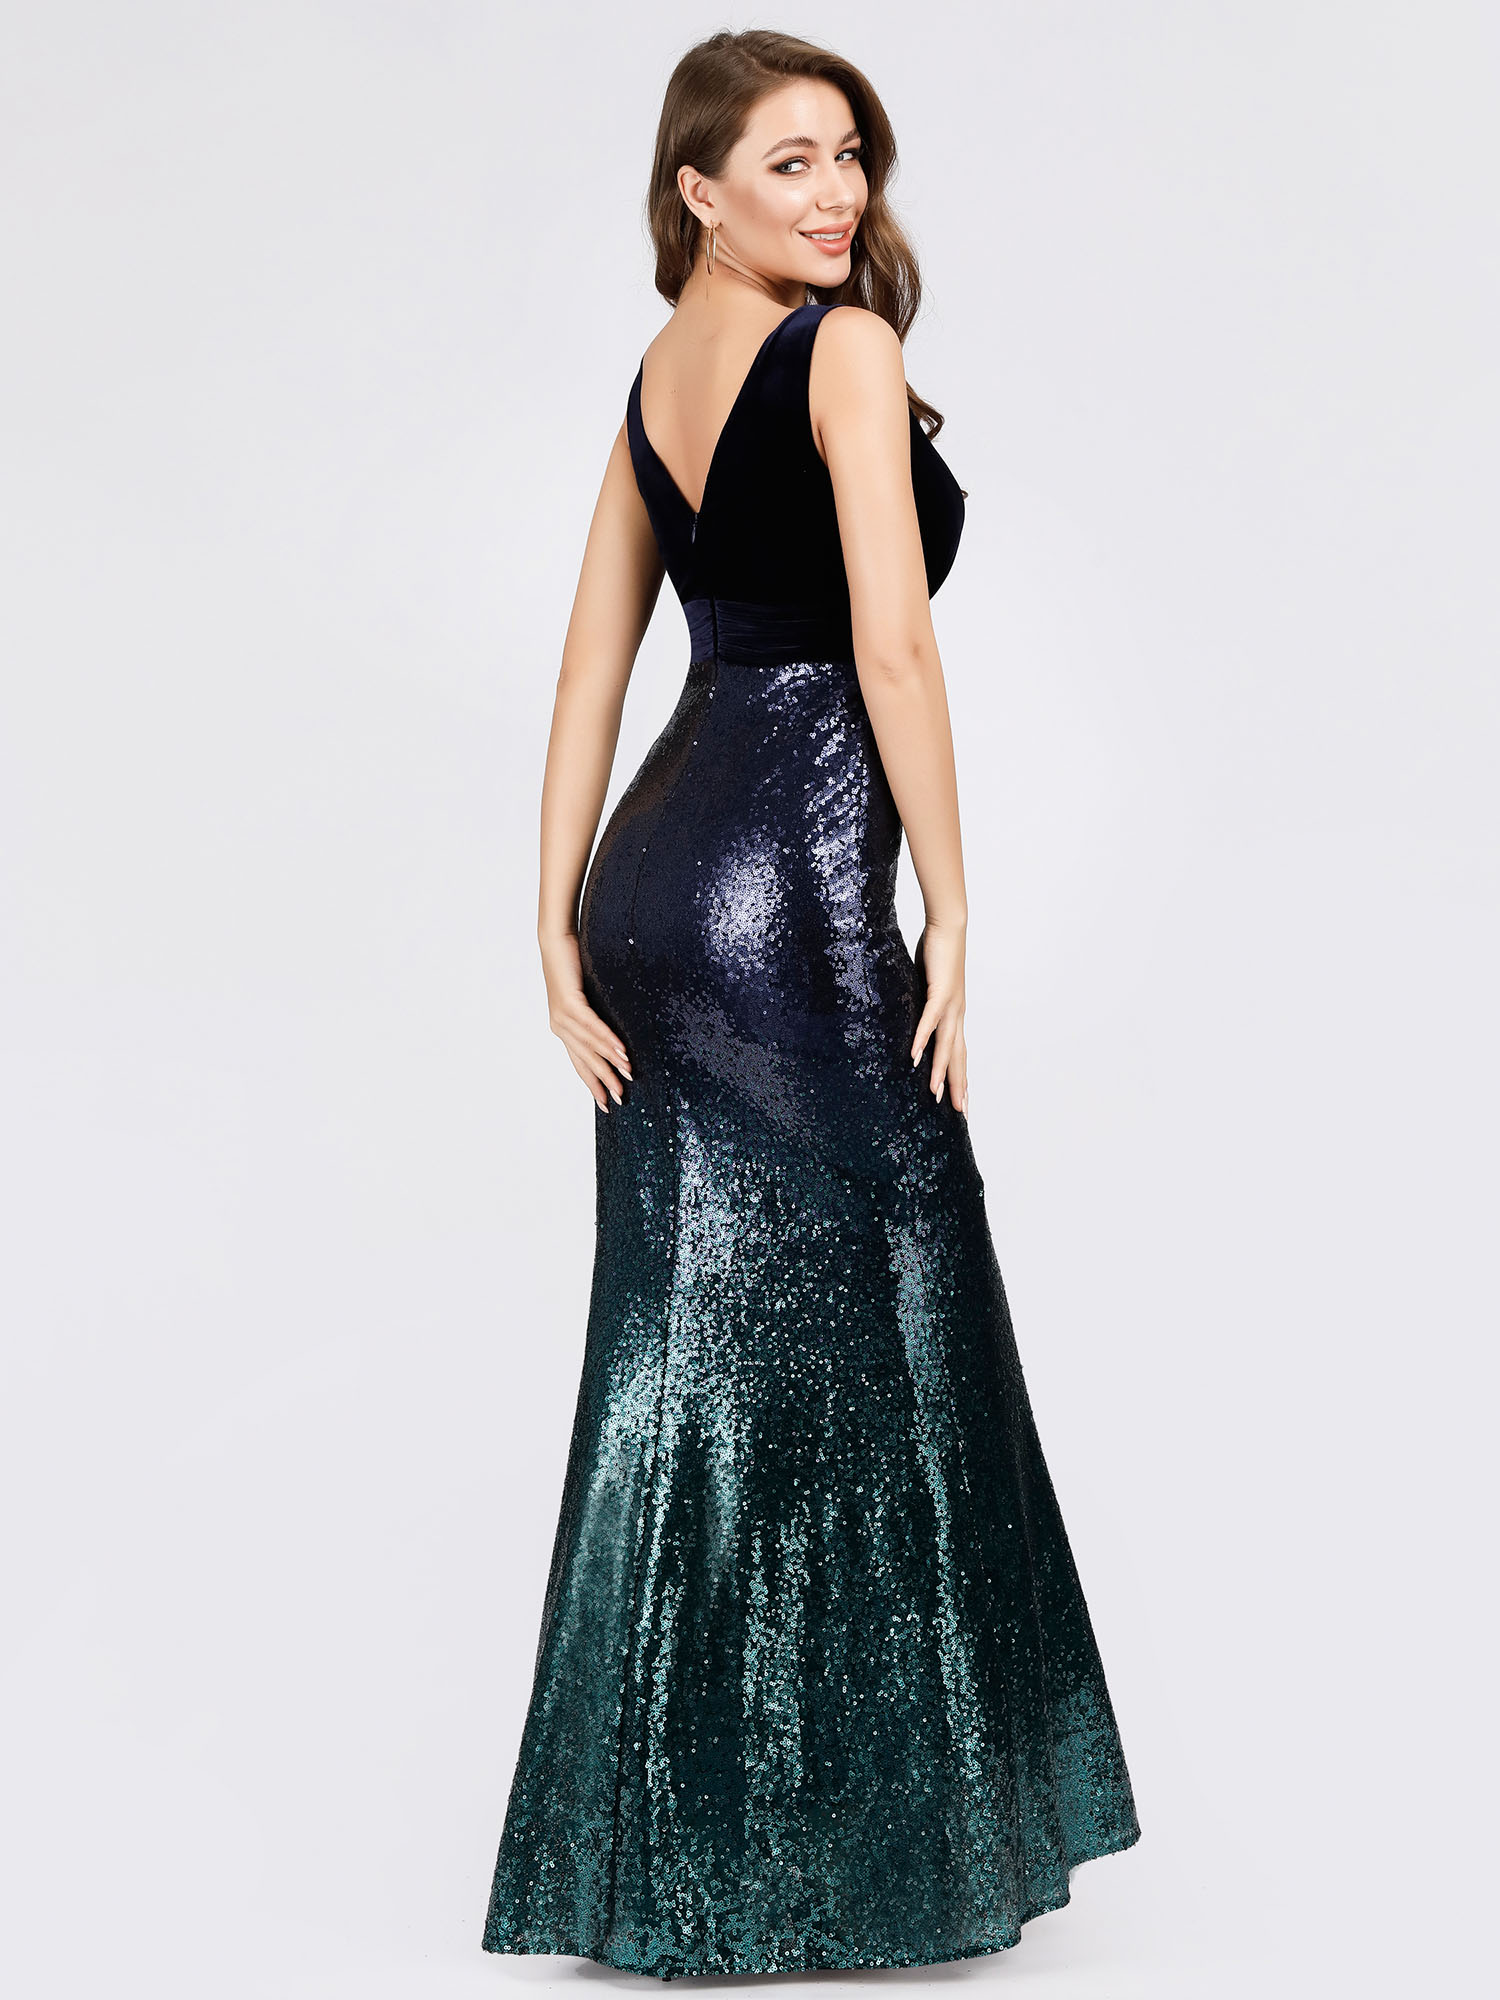 Ever-Pretty-Navy-Cocktail-Bodycon-Dress-Sequins-Mermaid-Wedding-Prom-Gown-07767 thumbnail 7